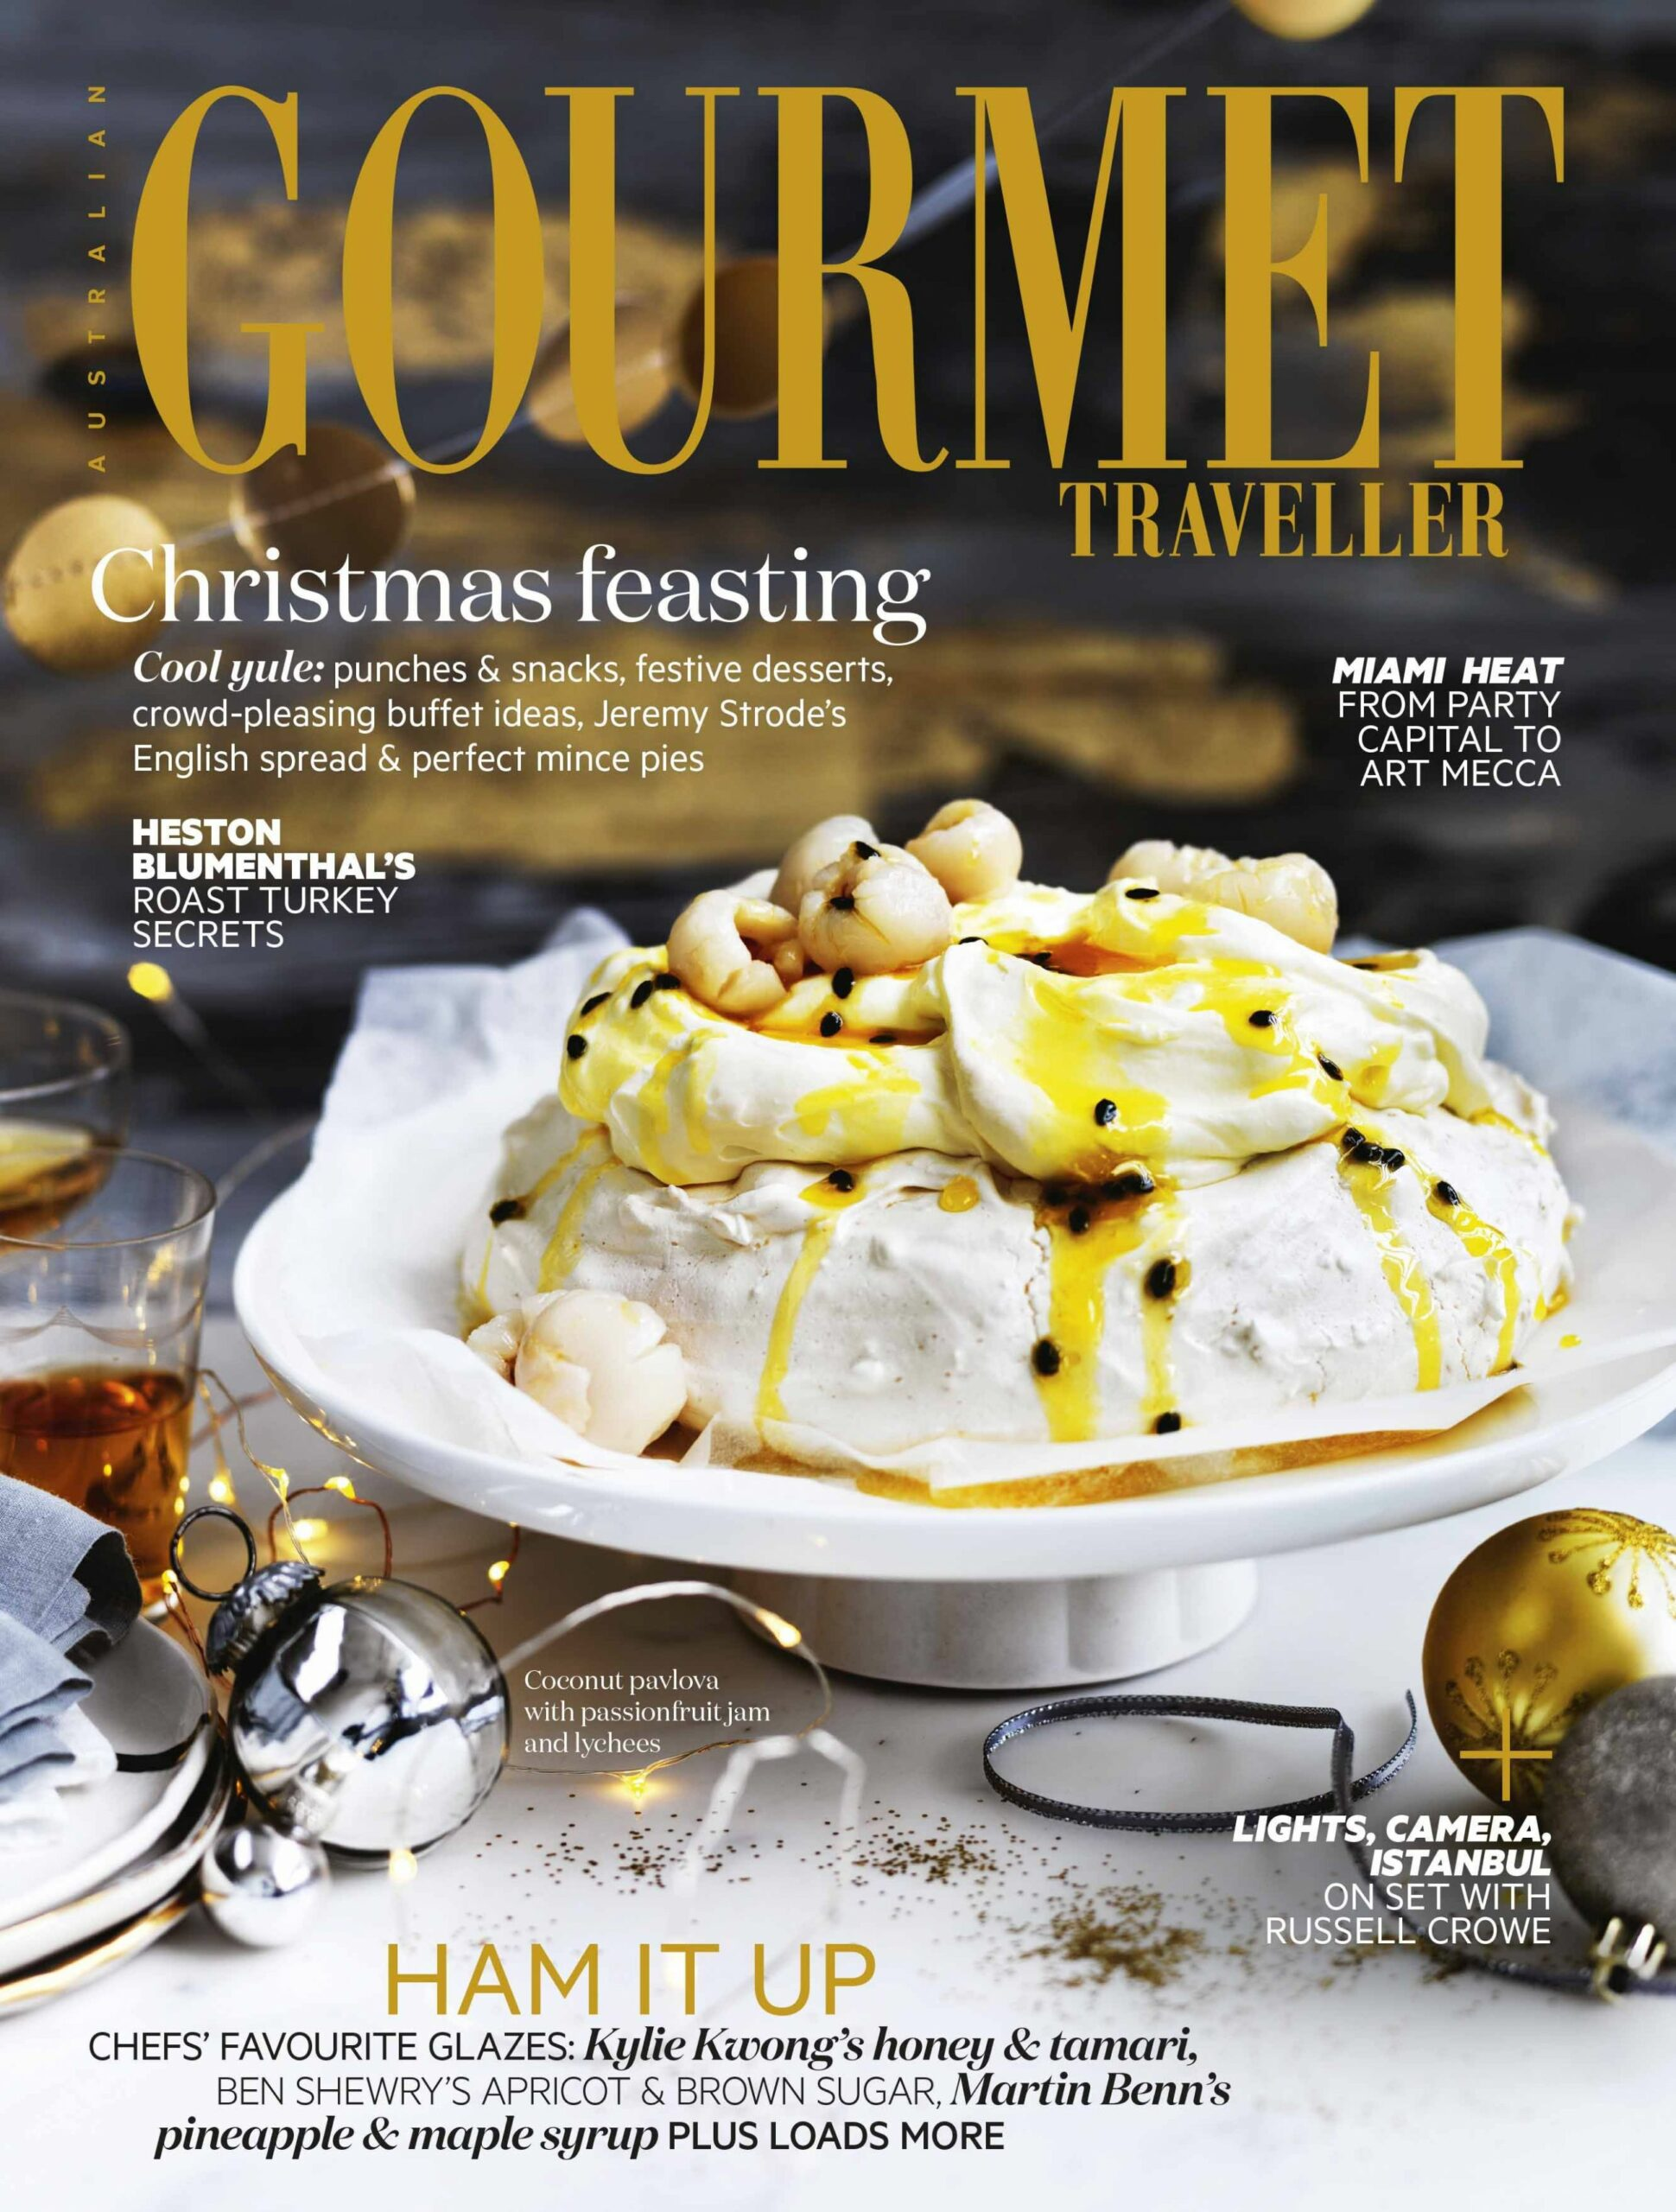 Coconut pavlova with passionfruit jam and lychees - Dessert Recipes Gourmet Traveller